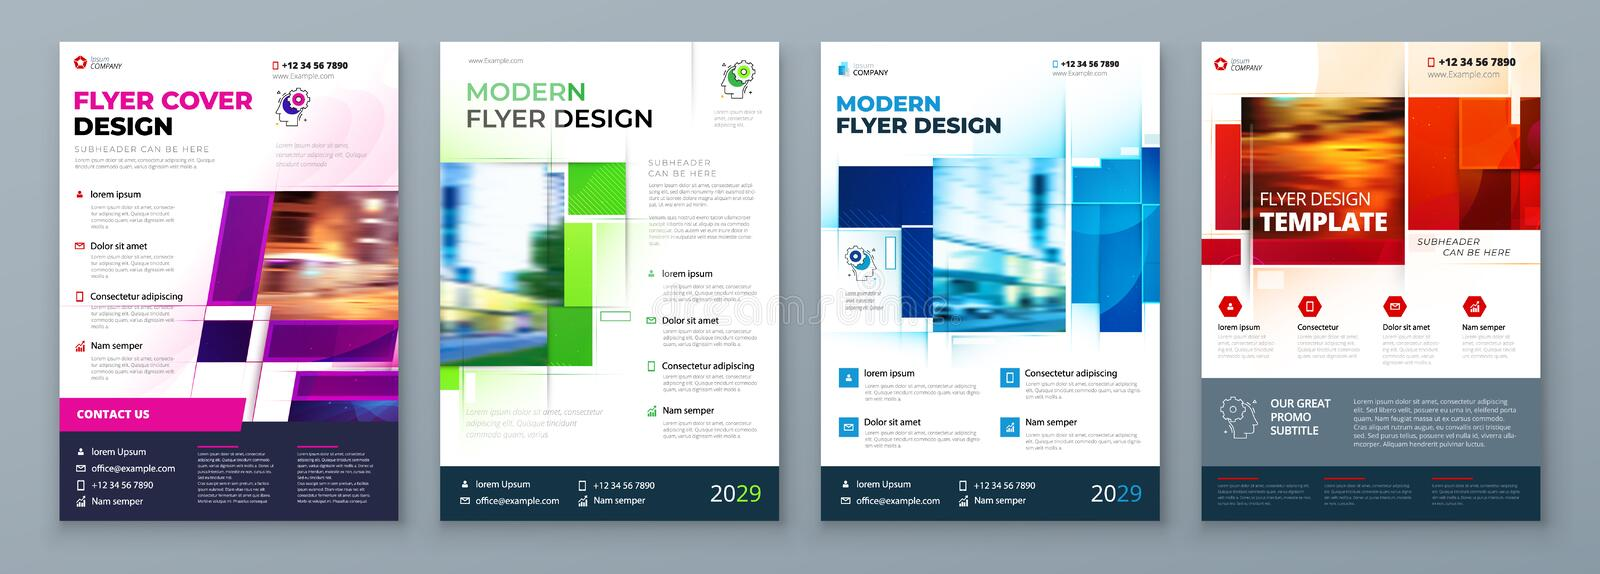 Flyer Template Layout Design Corporate Business Flyer, Report, Catalog, Magazine Mockup Kreatives, modernes Lichtkonzept stock abbildung